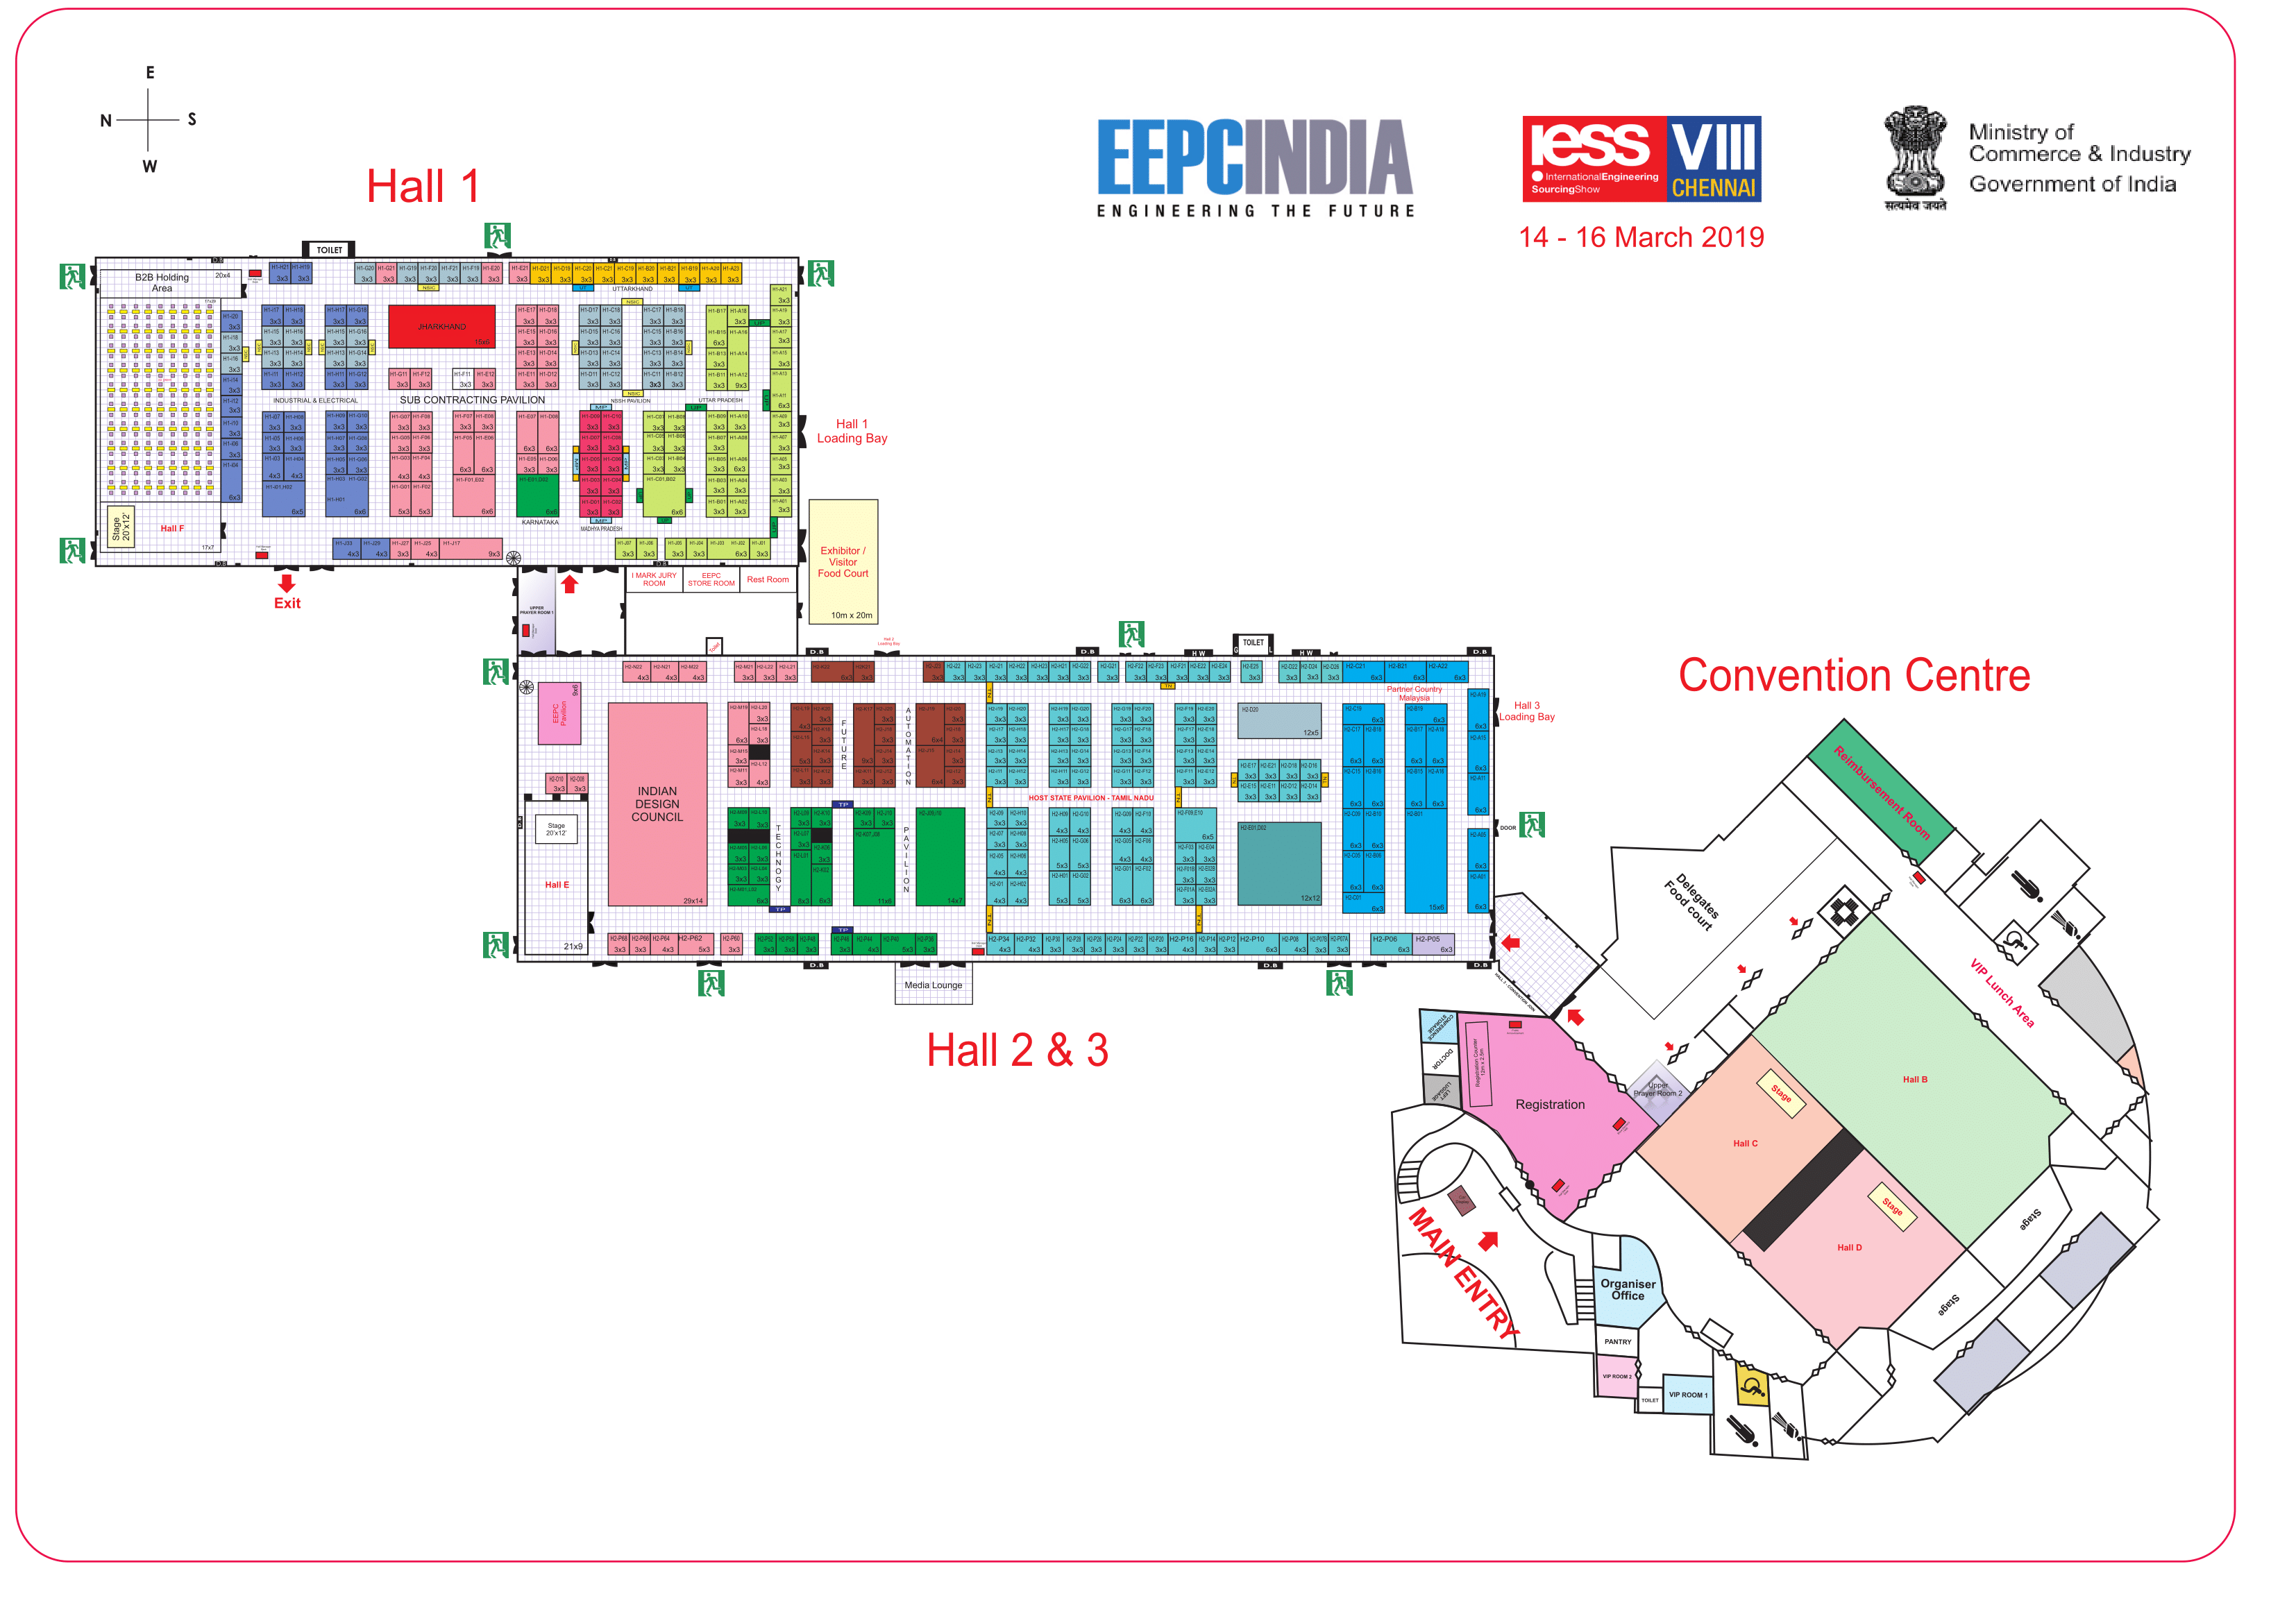 IESS VIII Venue Layout